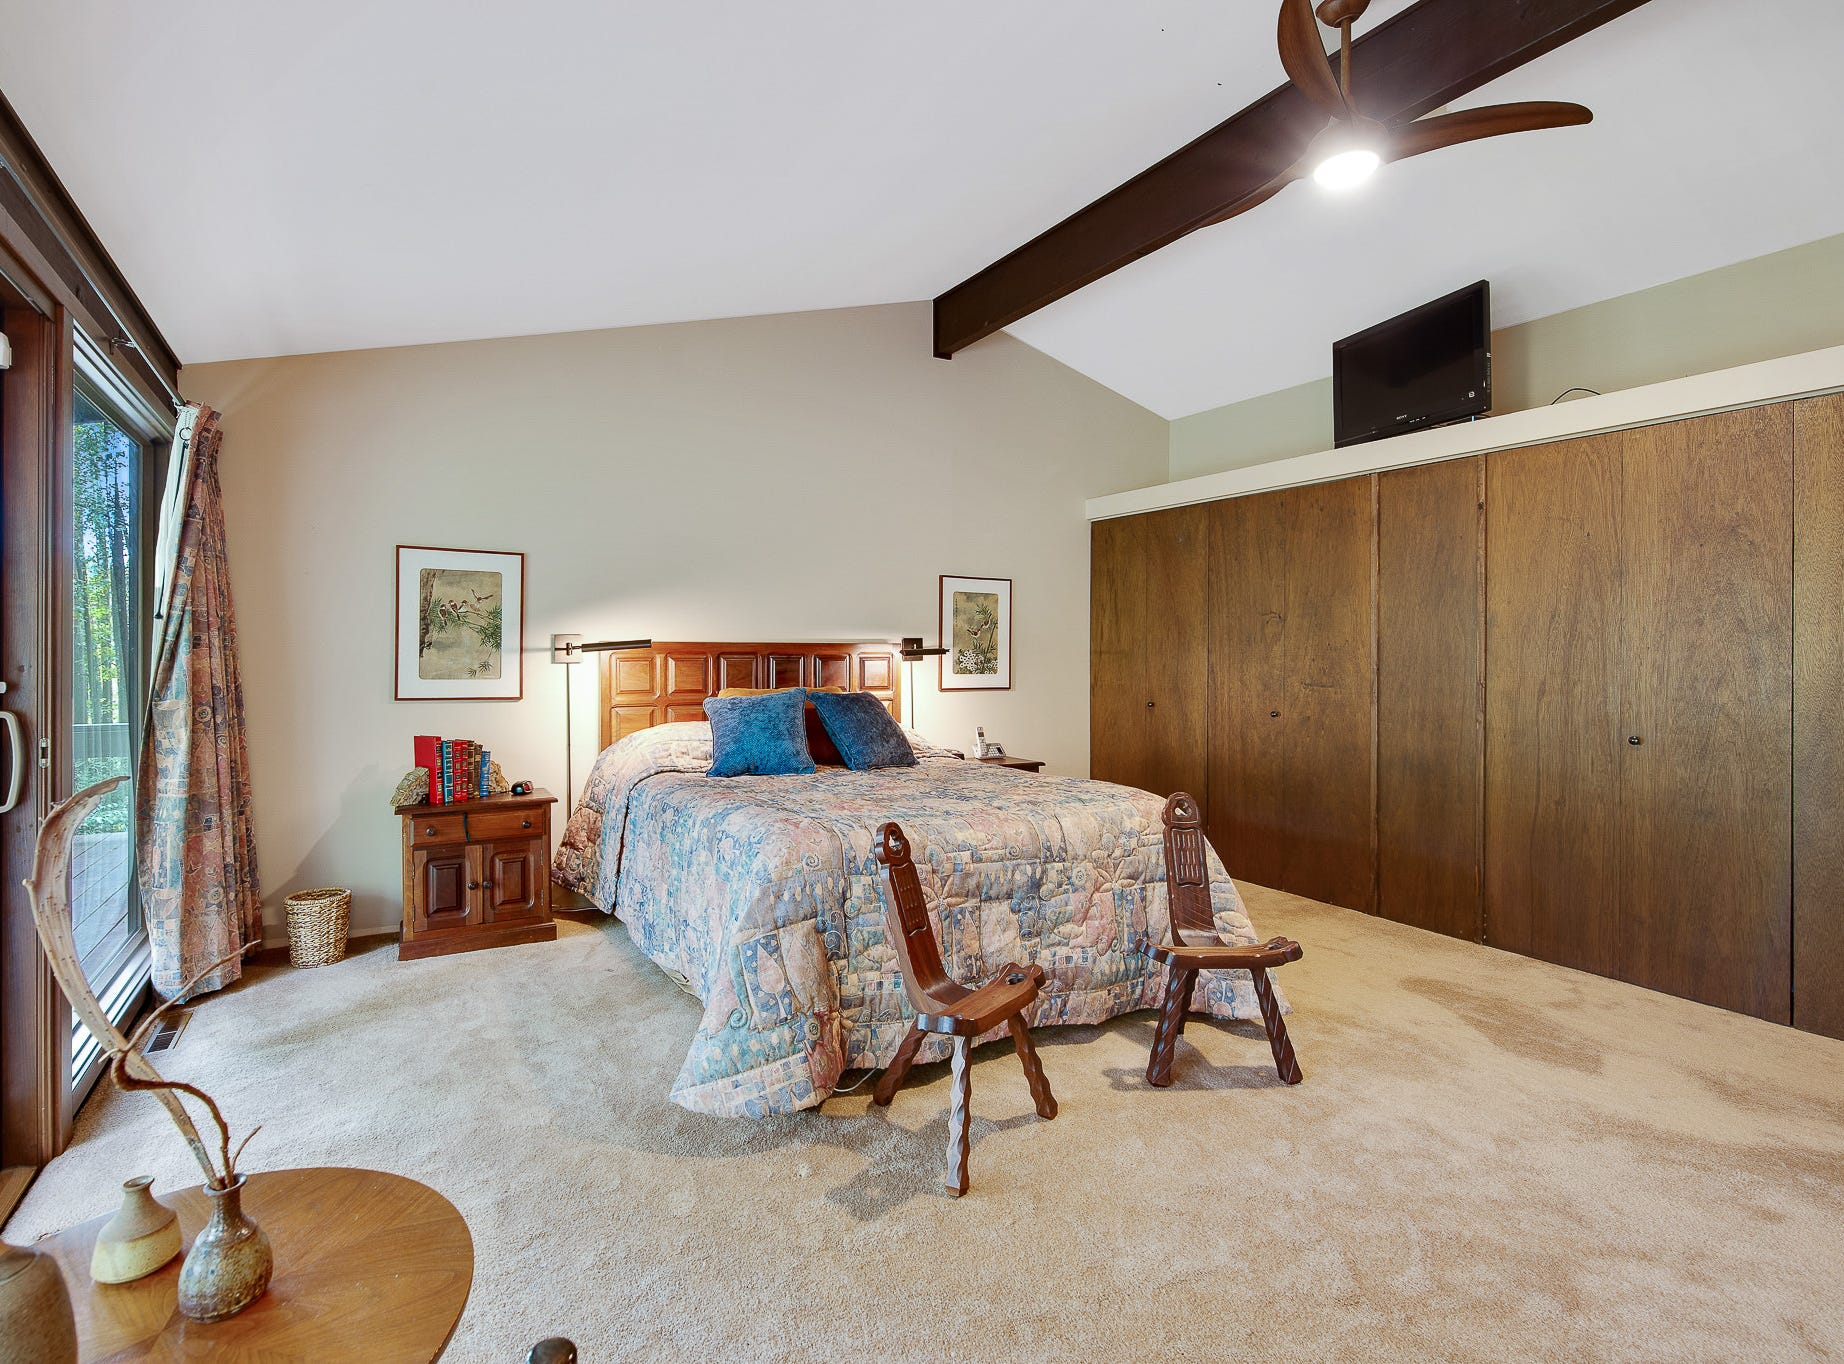 The master bedroom at 110 Thissell in Greenville features beautiful views and built-in closets.